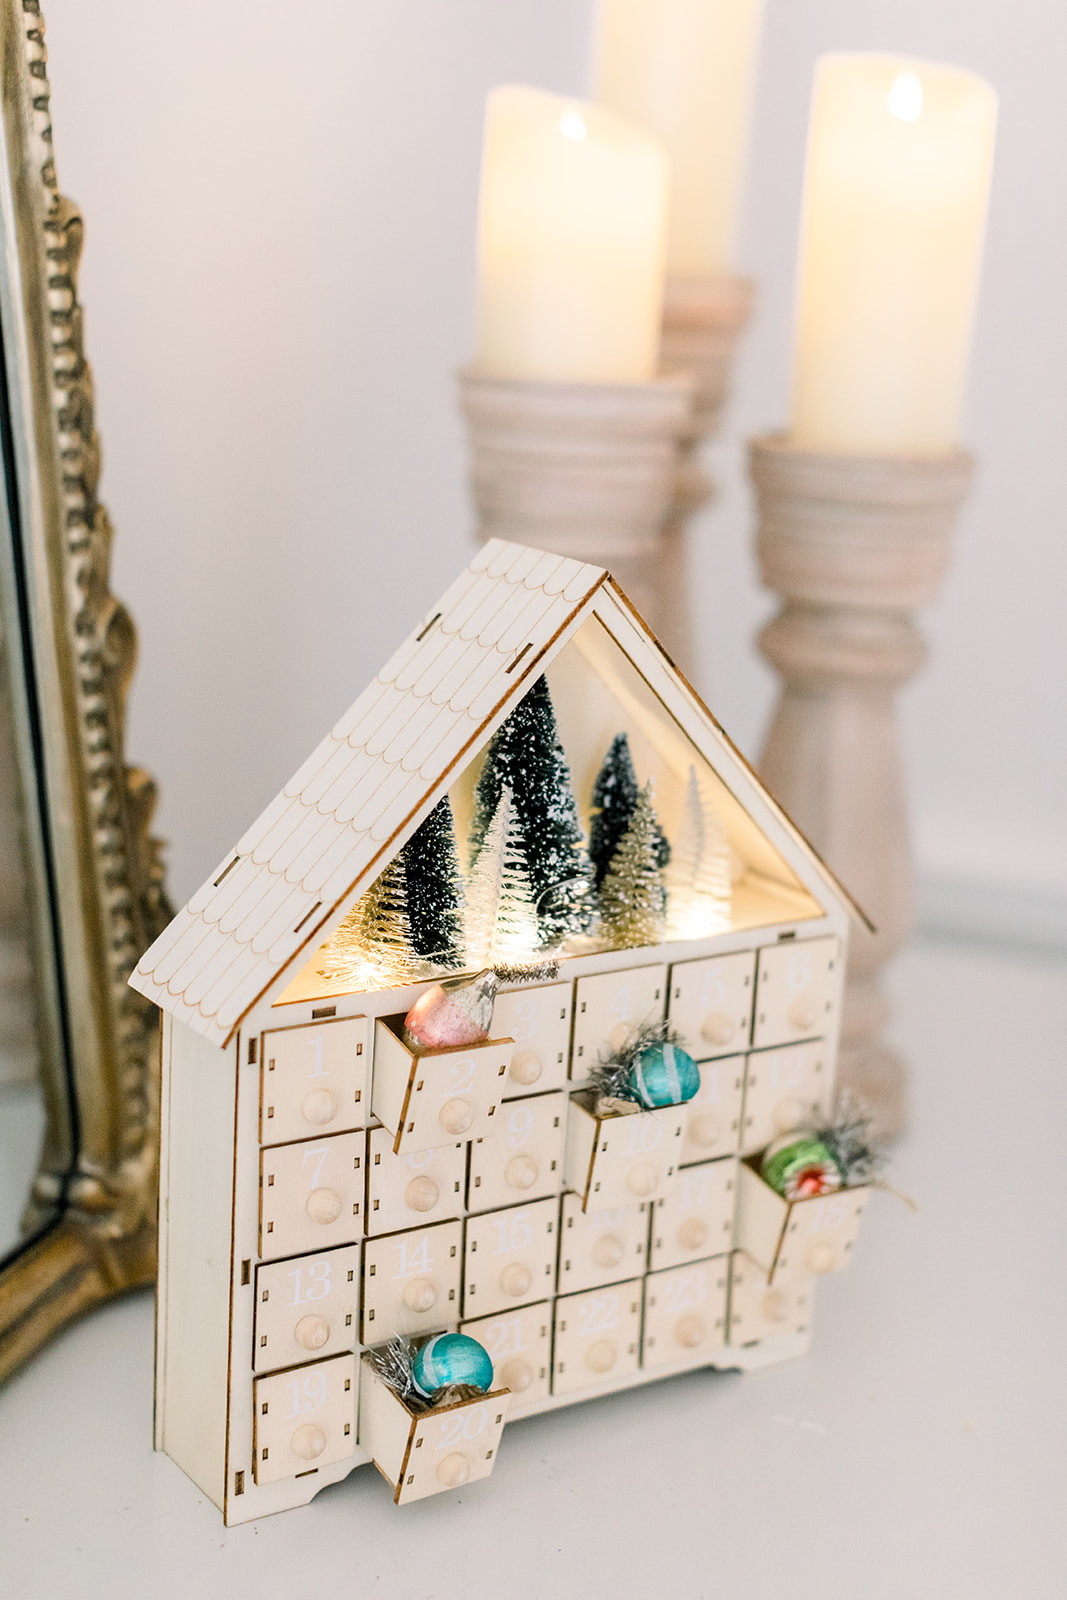 Looking for Advent calendar holiday ideas? Connecticut life and style blogger Lauren McBride shares 24 ideas for the countdown.